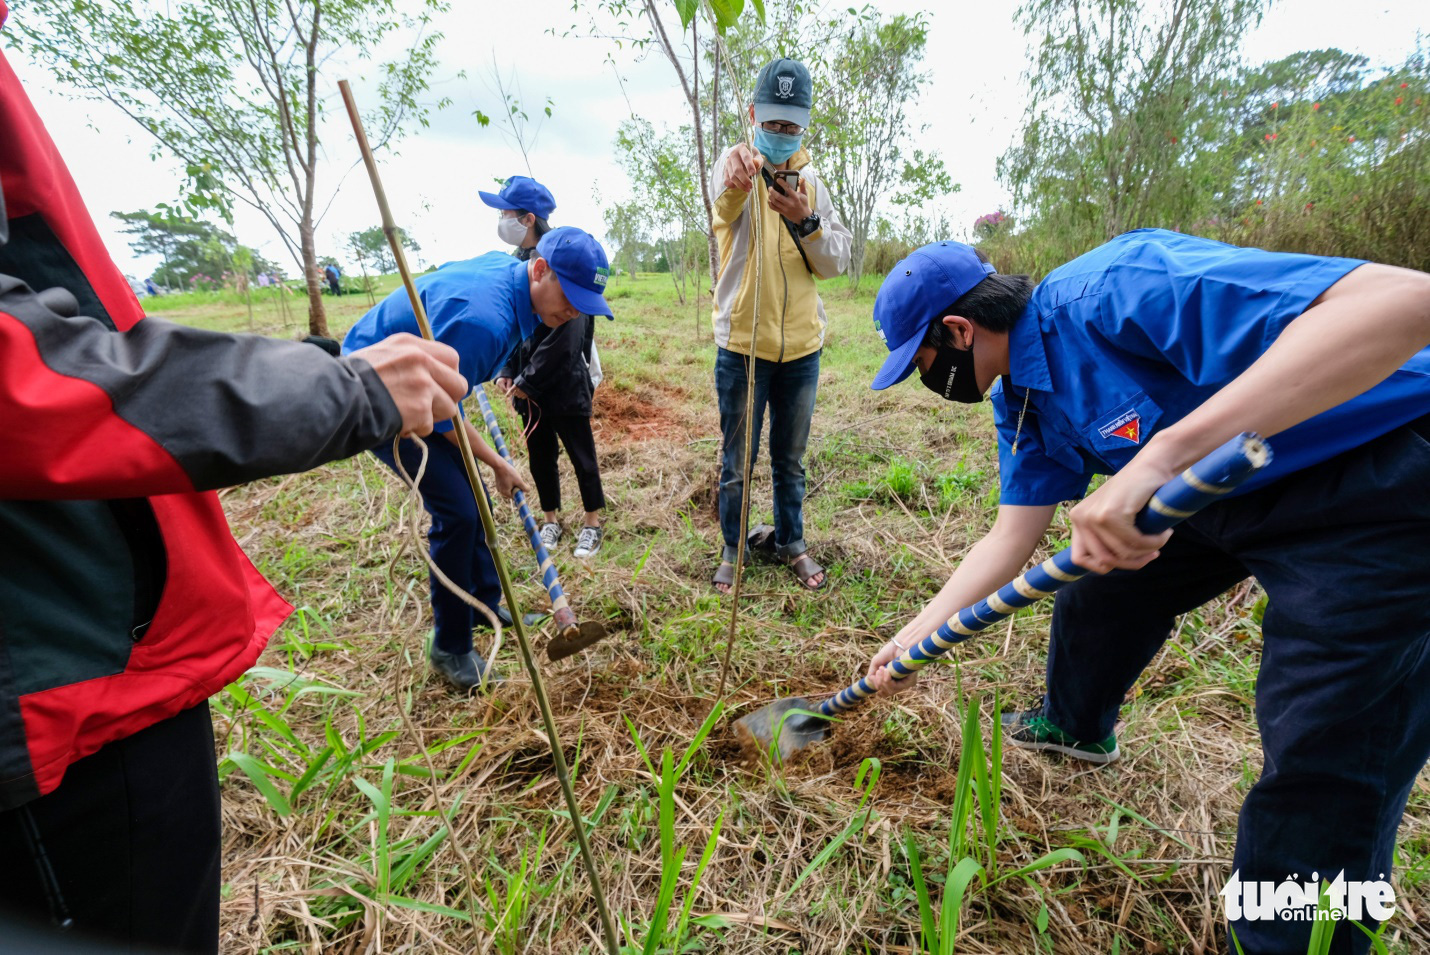 Members of the Ho Chi Minh Communist Youth Union's division in Lam Dong Province plant a tree at the launching ceremony of a mass planting project, Vietnam, April 23, 2021. Photo: Duc Tho / Tuoi Tre